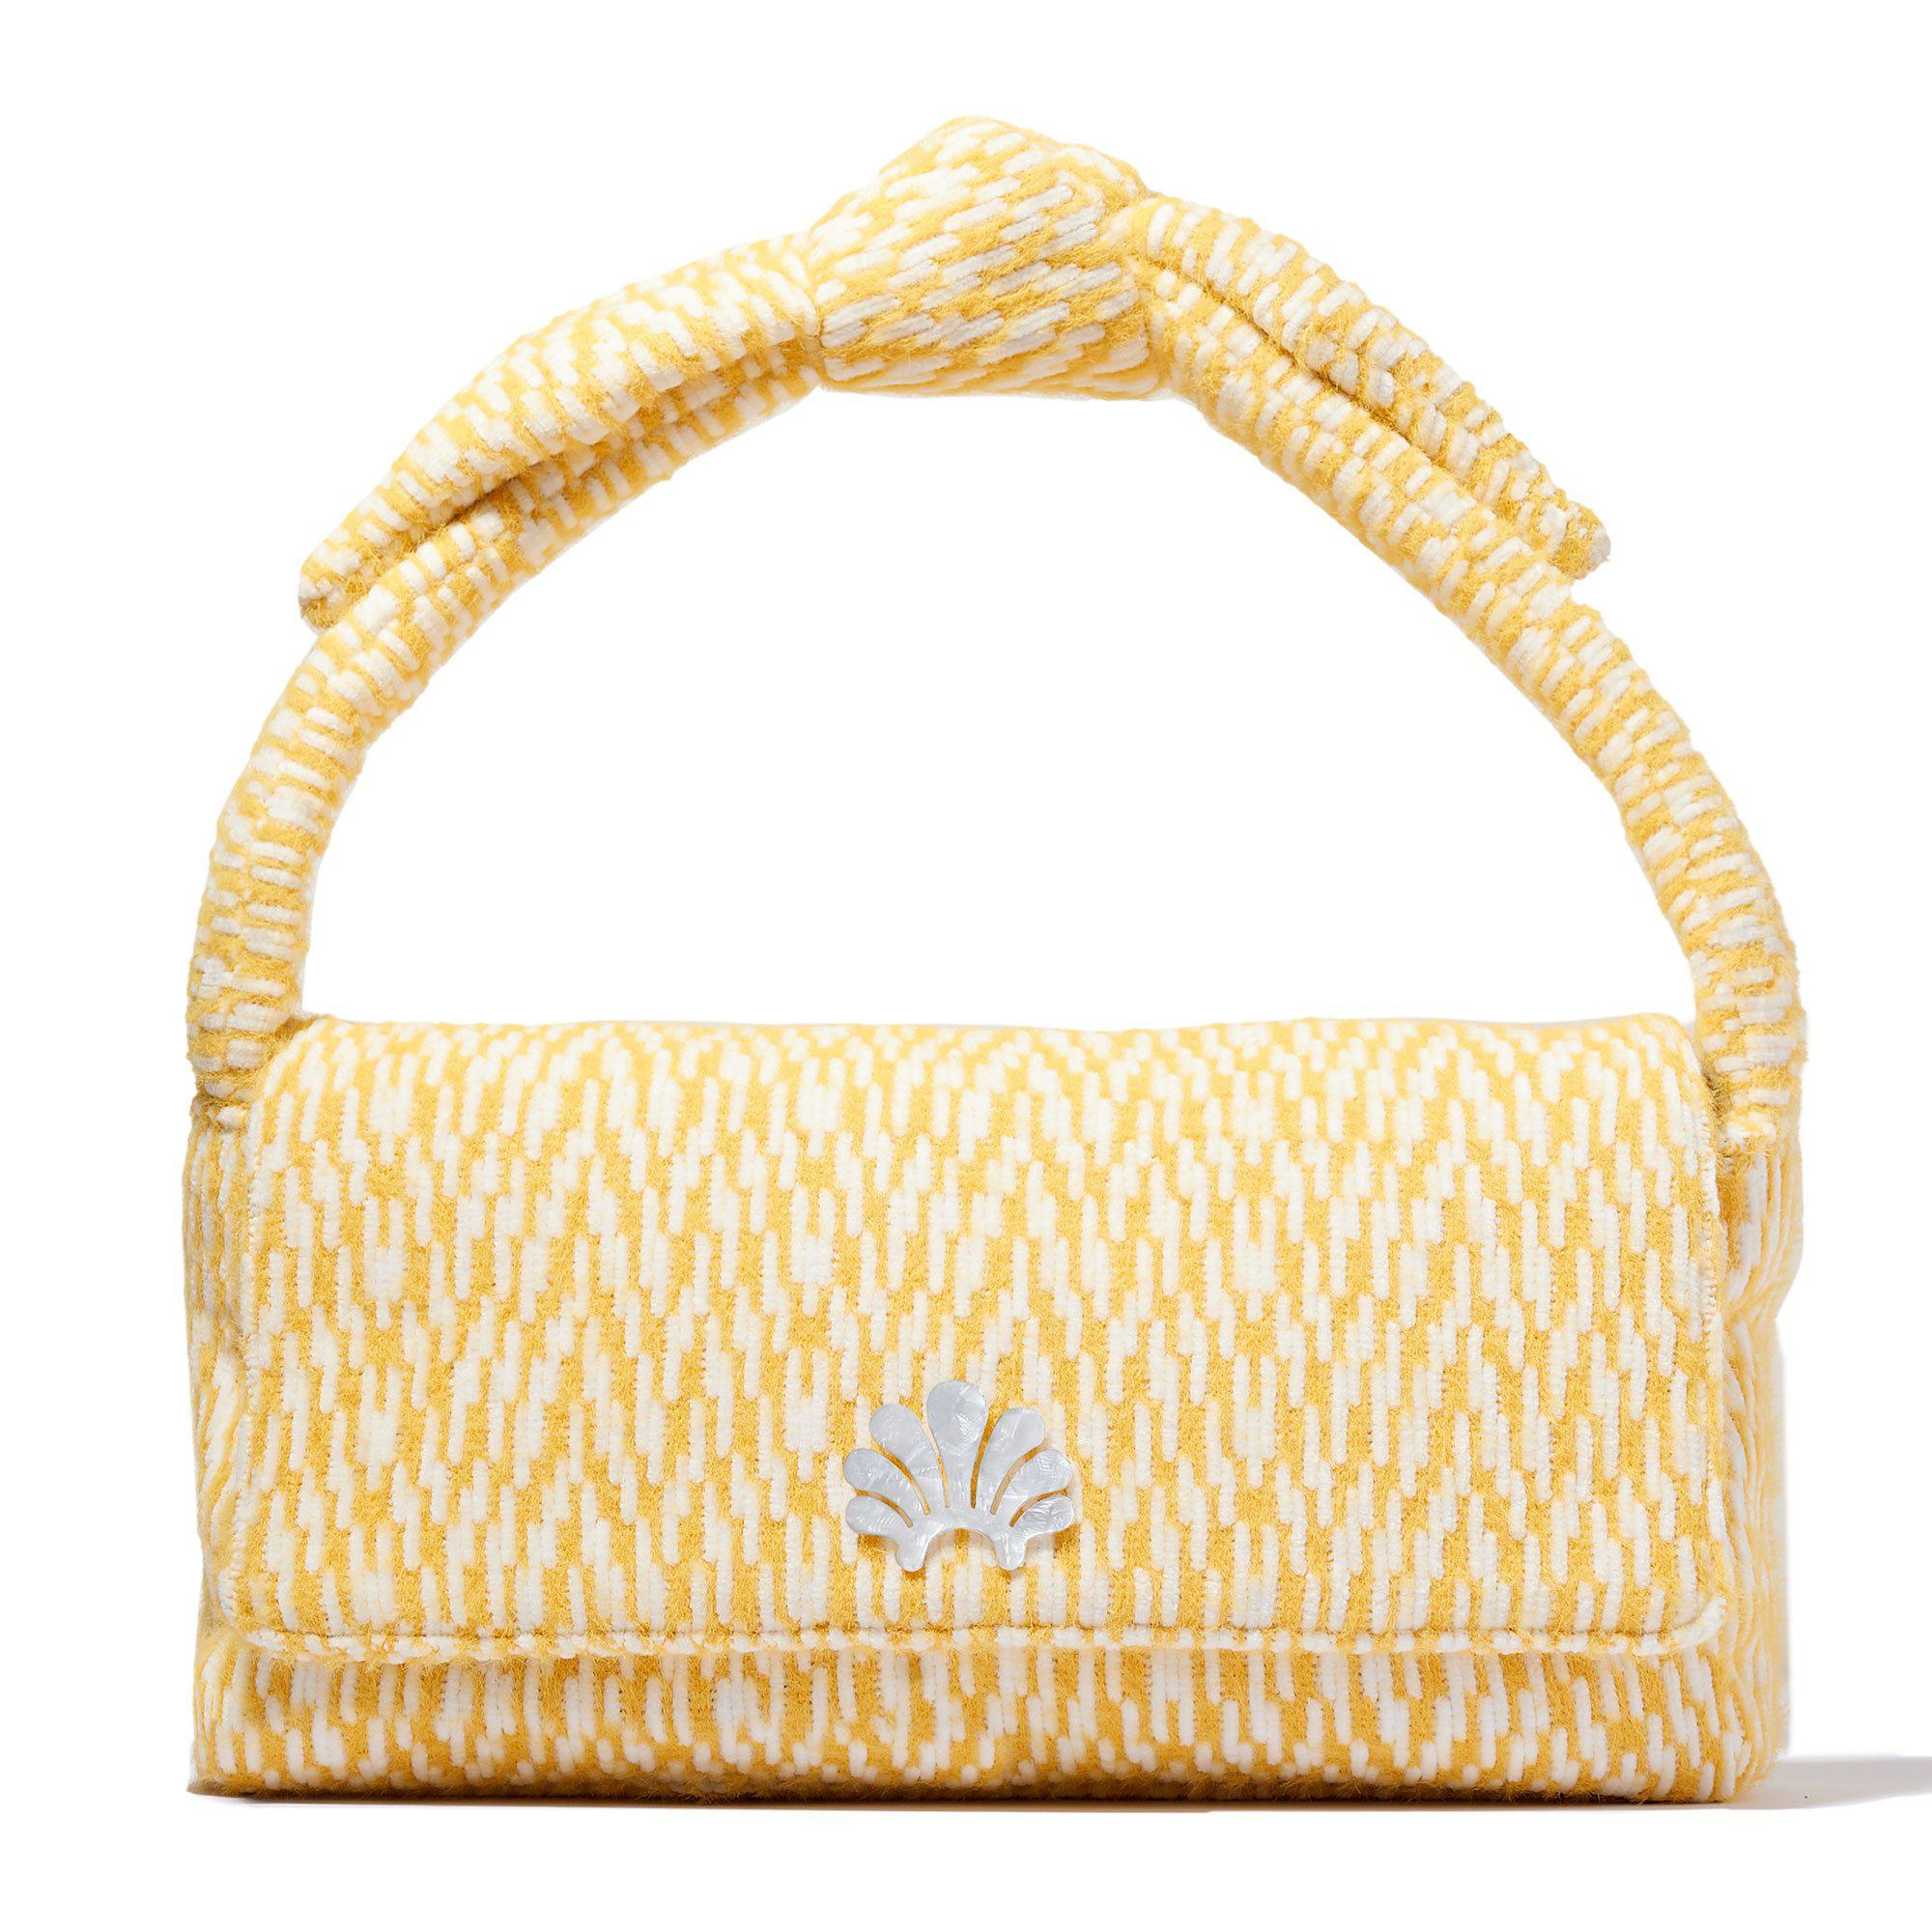 KNITTED YELLOW LYLE SHOULDER BAG